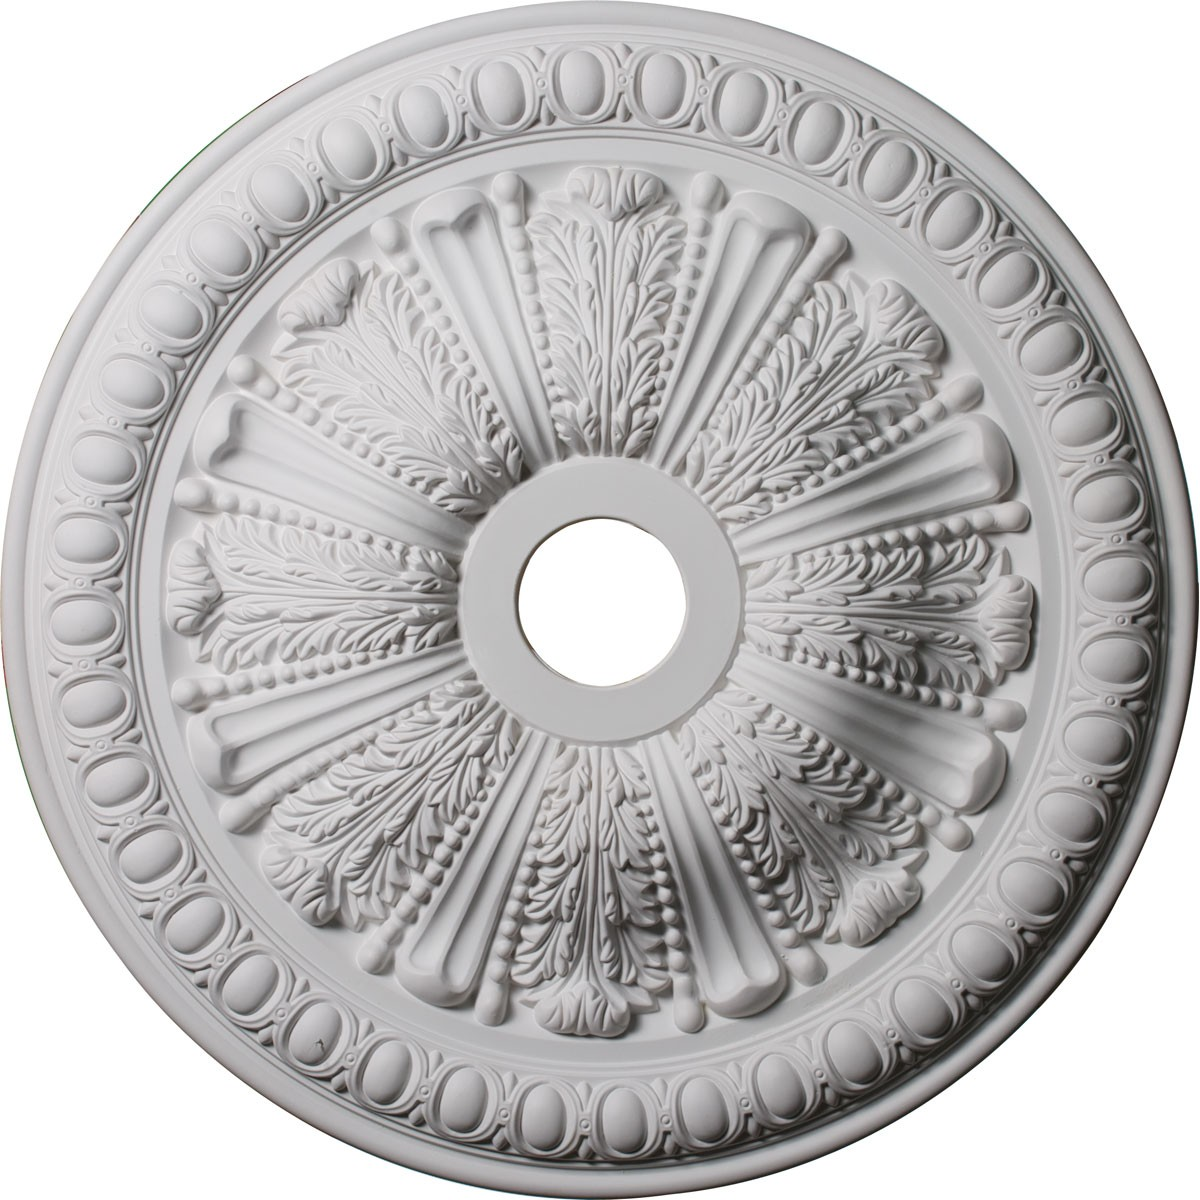 """EM-CM27TO - 27 7/8""""OD x 3 7/8""""ID x 2 1/2""""P Tomango Egg & Dart Ceiling Medallion (Fits Canopies up to 6 3/4"""")"""